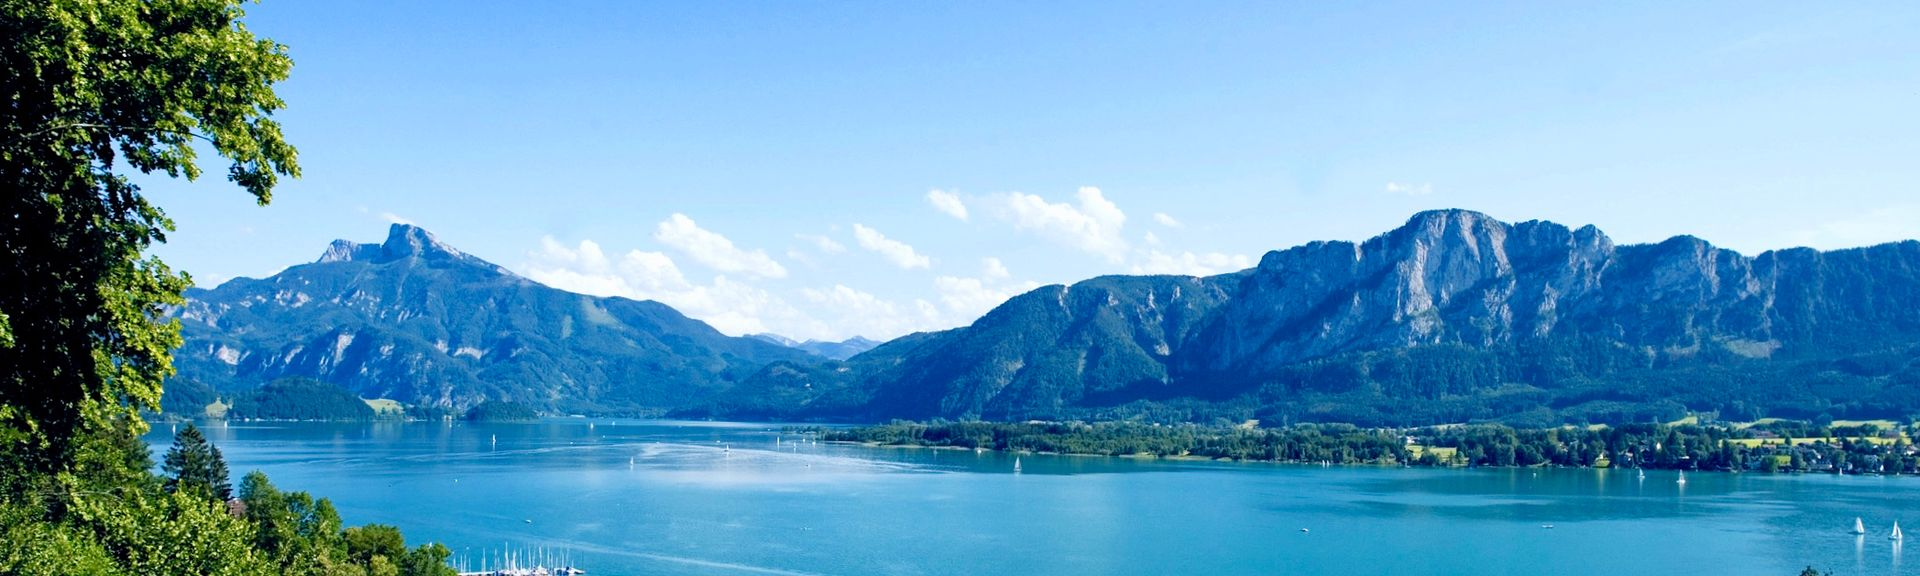 Special offers list - Traunsee-Almtal